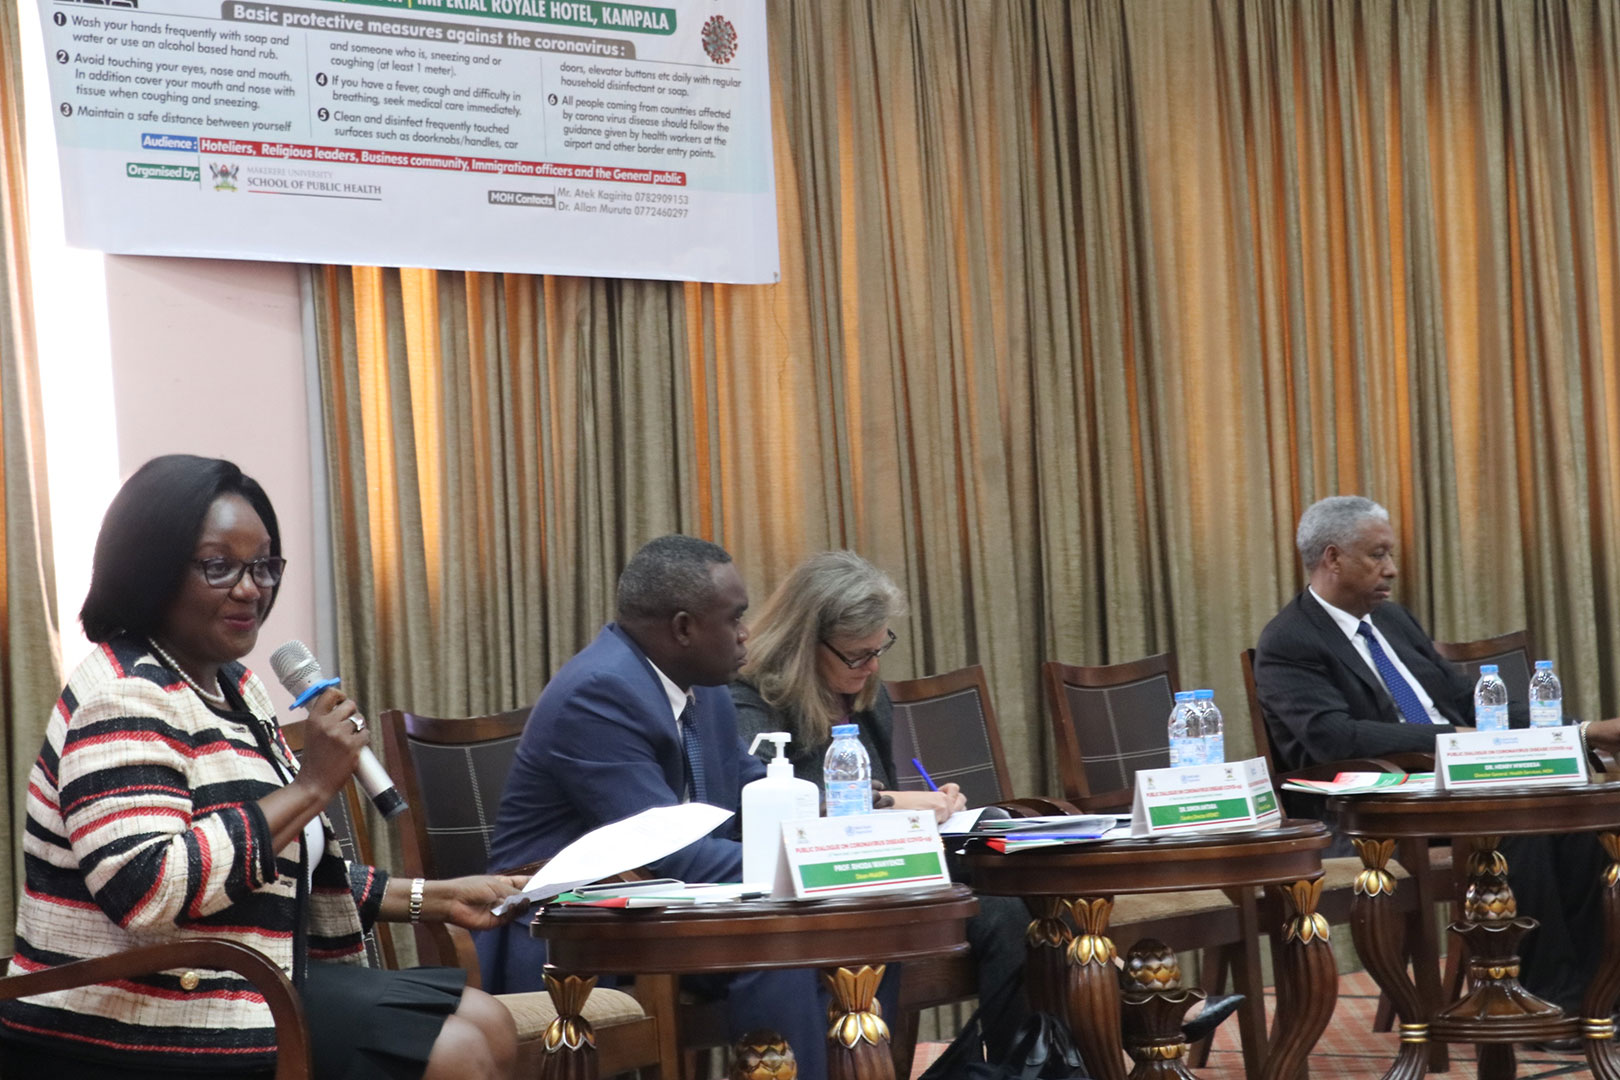 The Dean, MakSPH -Prof,Rhoda Wanyenze , The Director, AFENET-Mr.Simon Antara,  Dr.Lisa Nelson, the US Centres For Disease Control(CDC) Country Director and  Dr. Yonas Tegegn Woldemariam, the World Health Organization-WHO country representative at the Public Dialogue on Friday 13th March, 2020 at the Imperial Royale Hotel